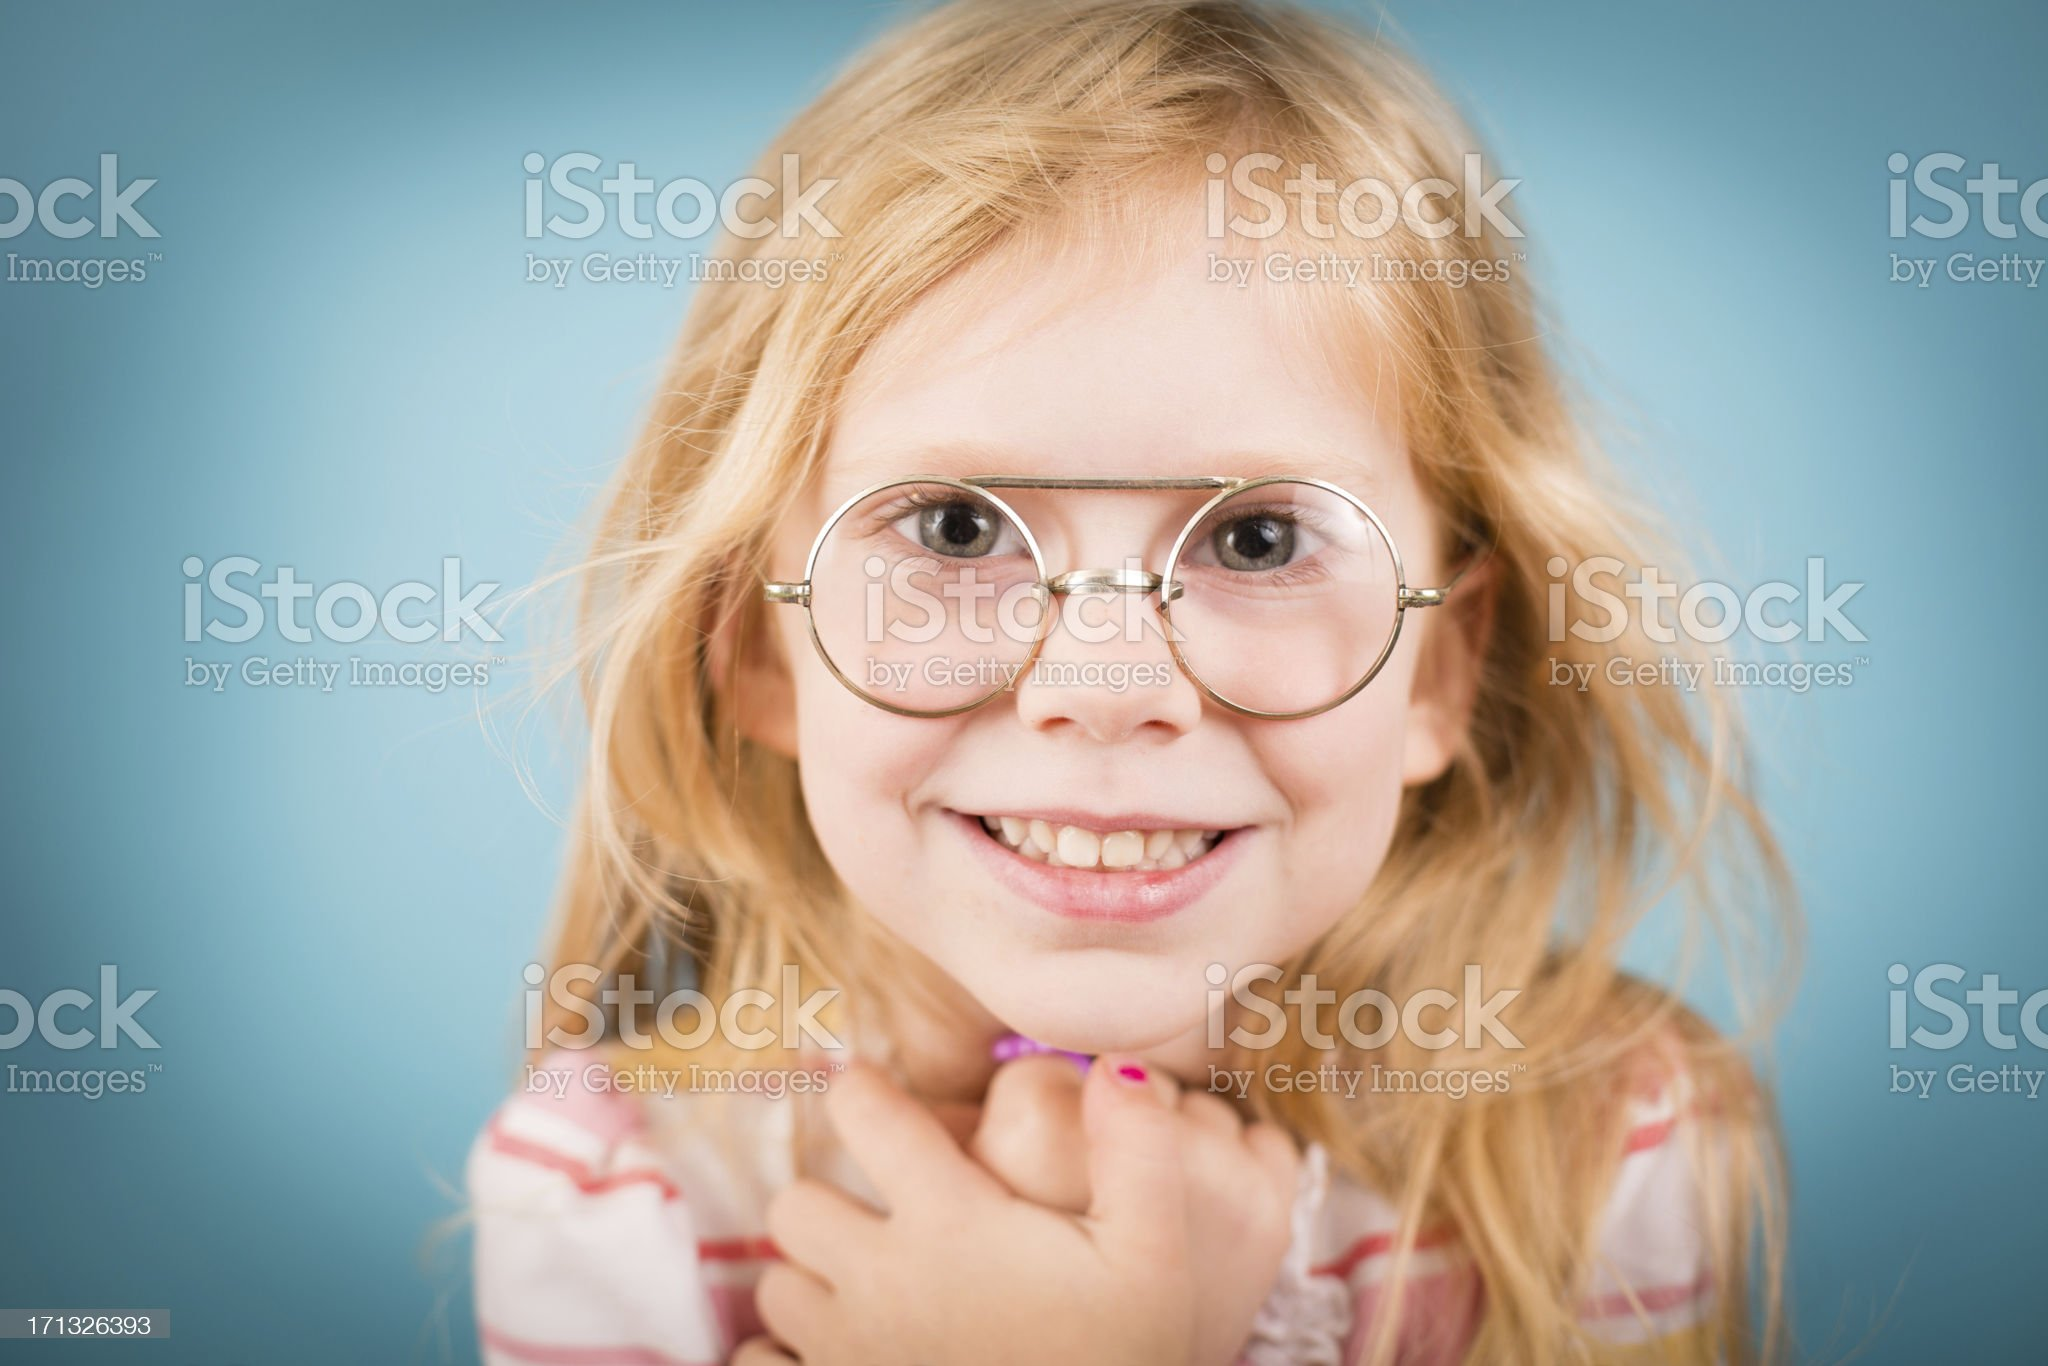 Little Girl Smiling While Wearing Vintage Nerdy Glasses royalty-free stock photo